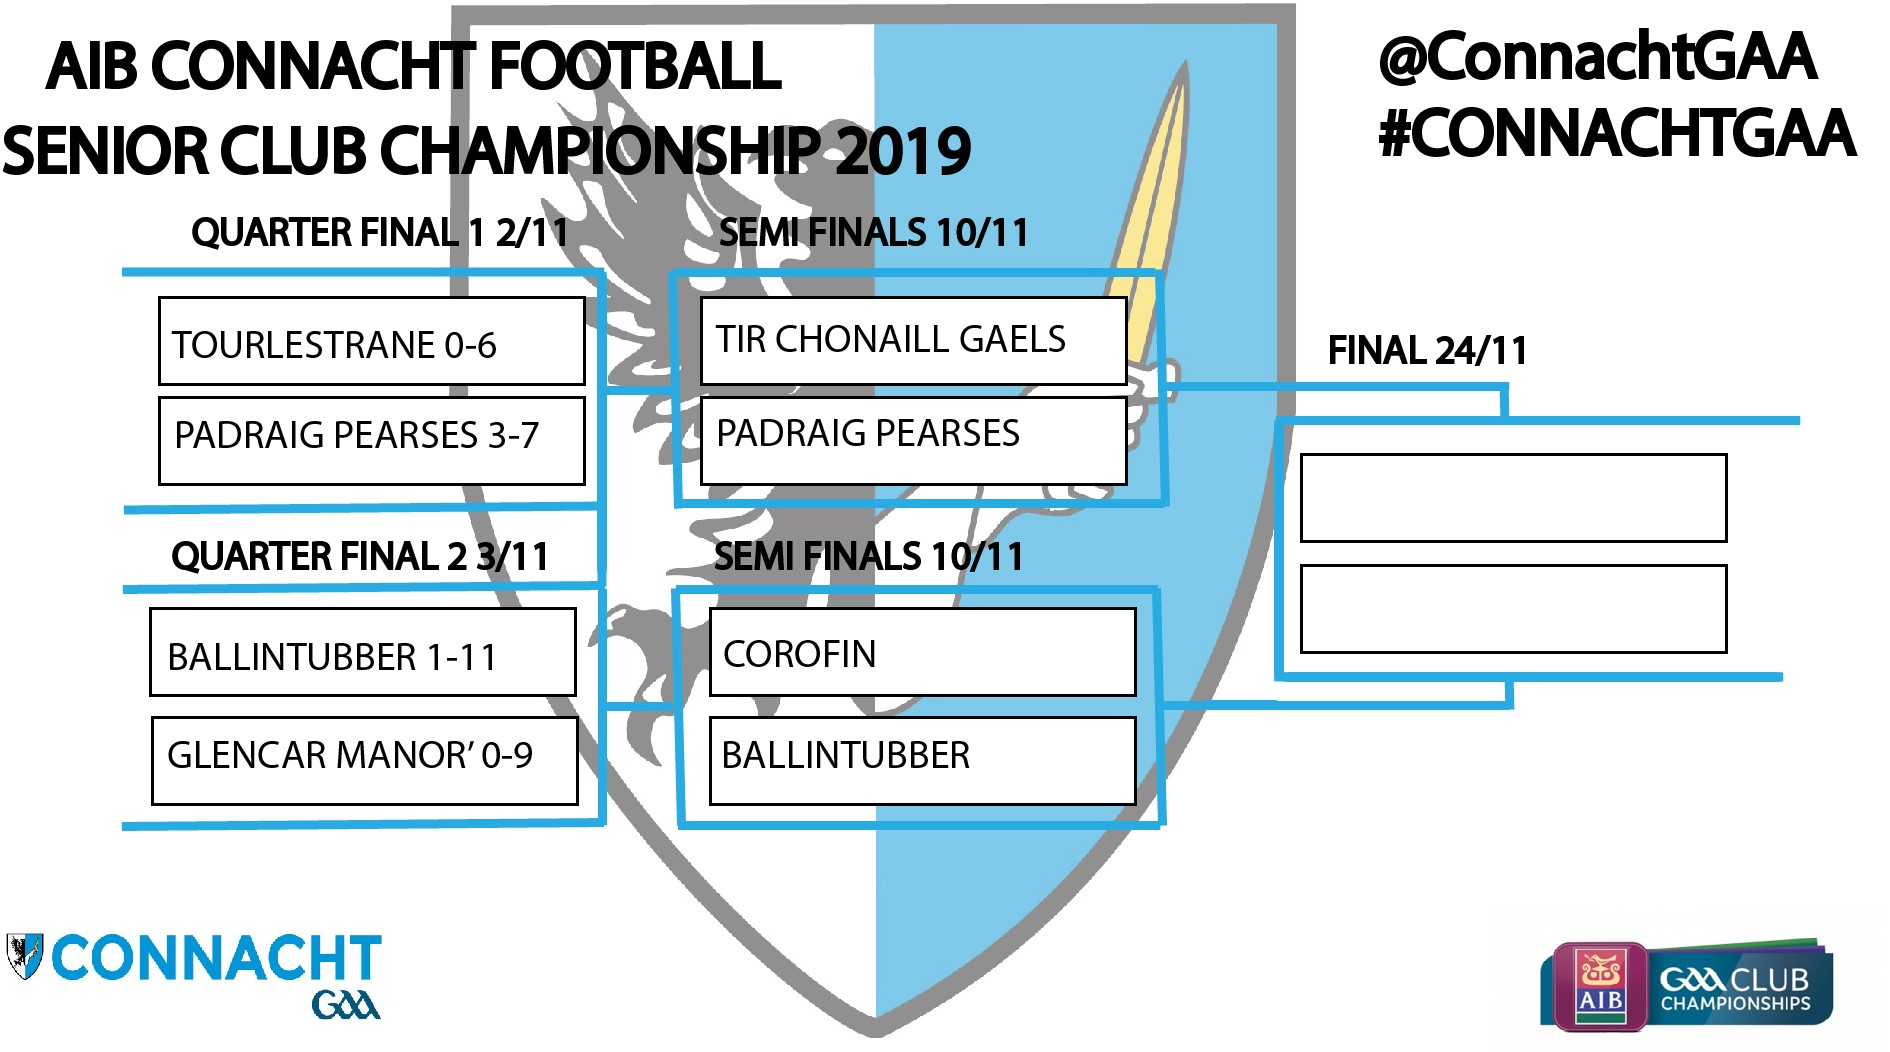 Connacht GAA Fixtures for Weekend of 9th and 10th November